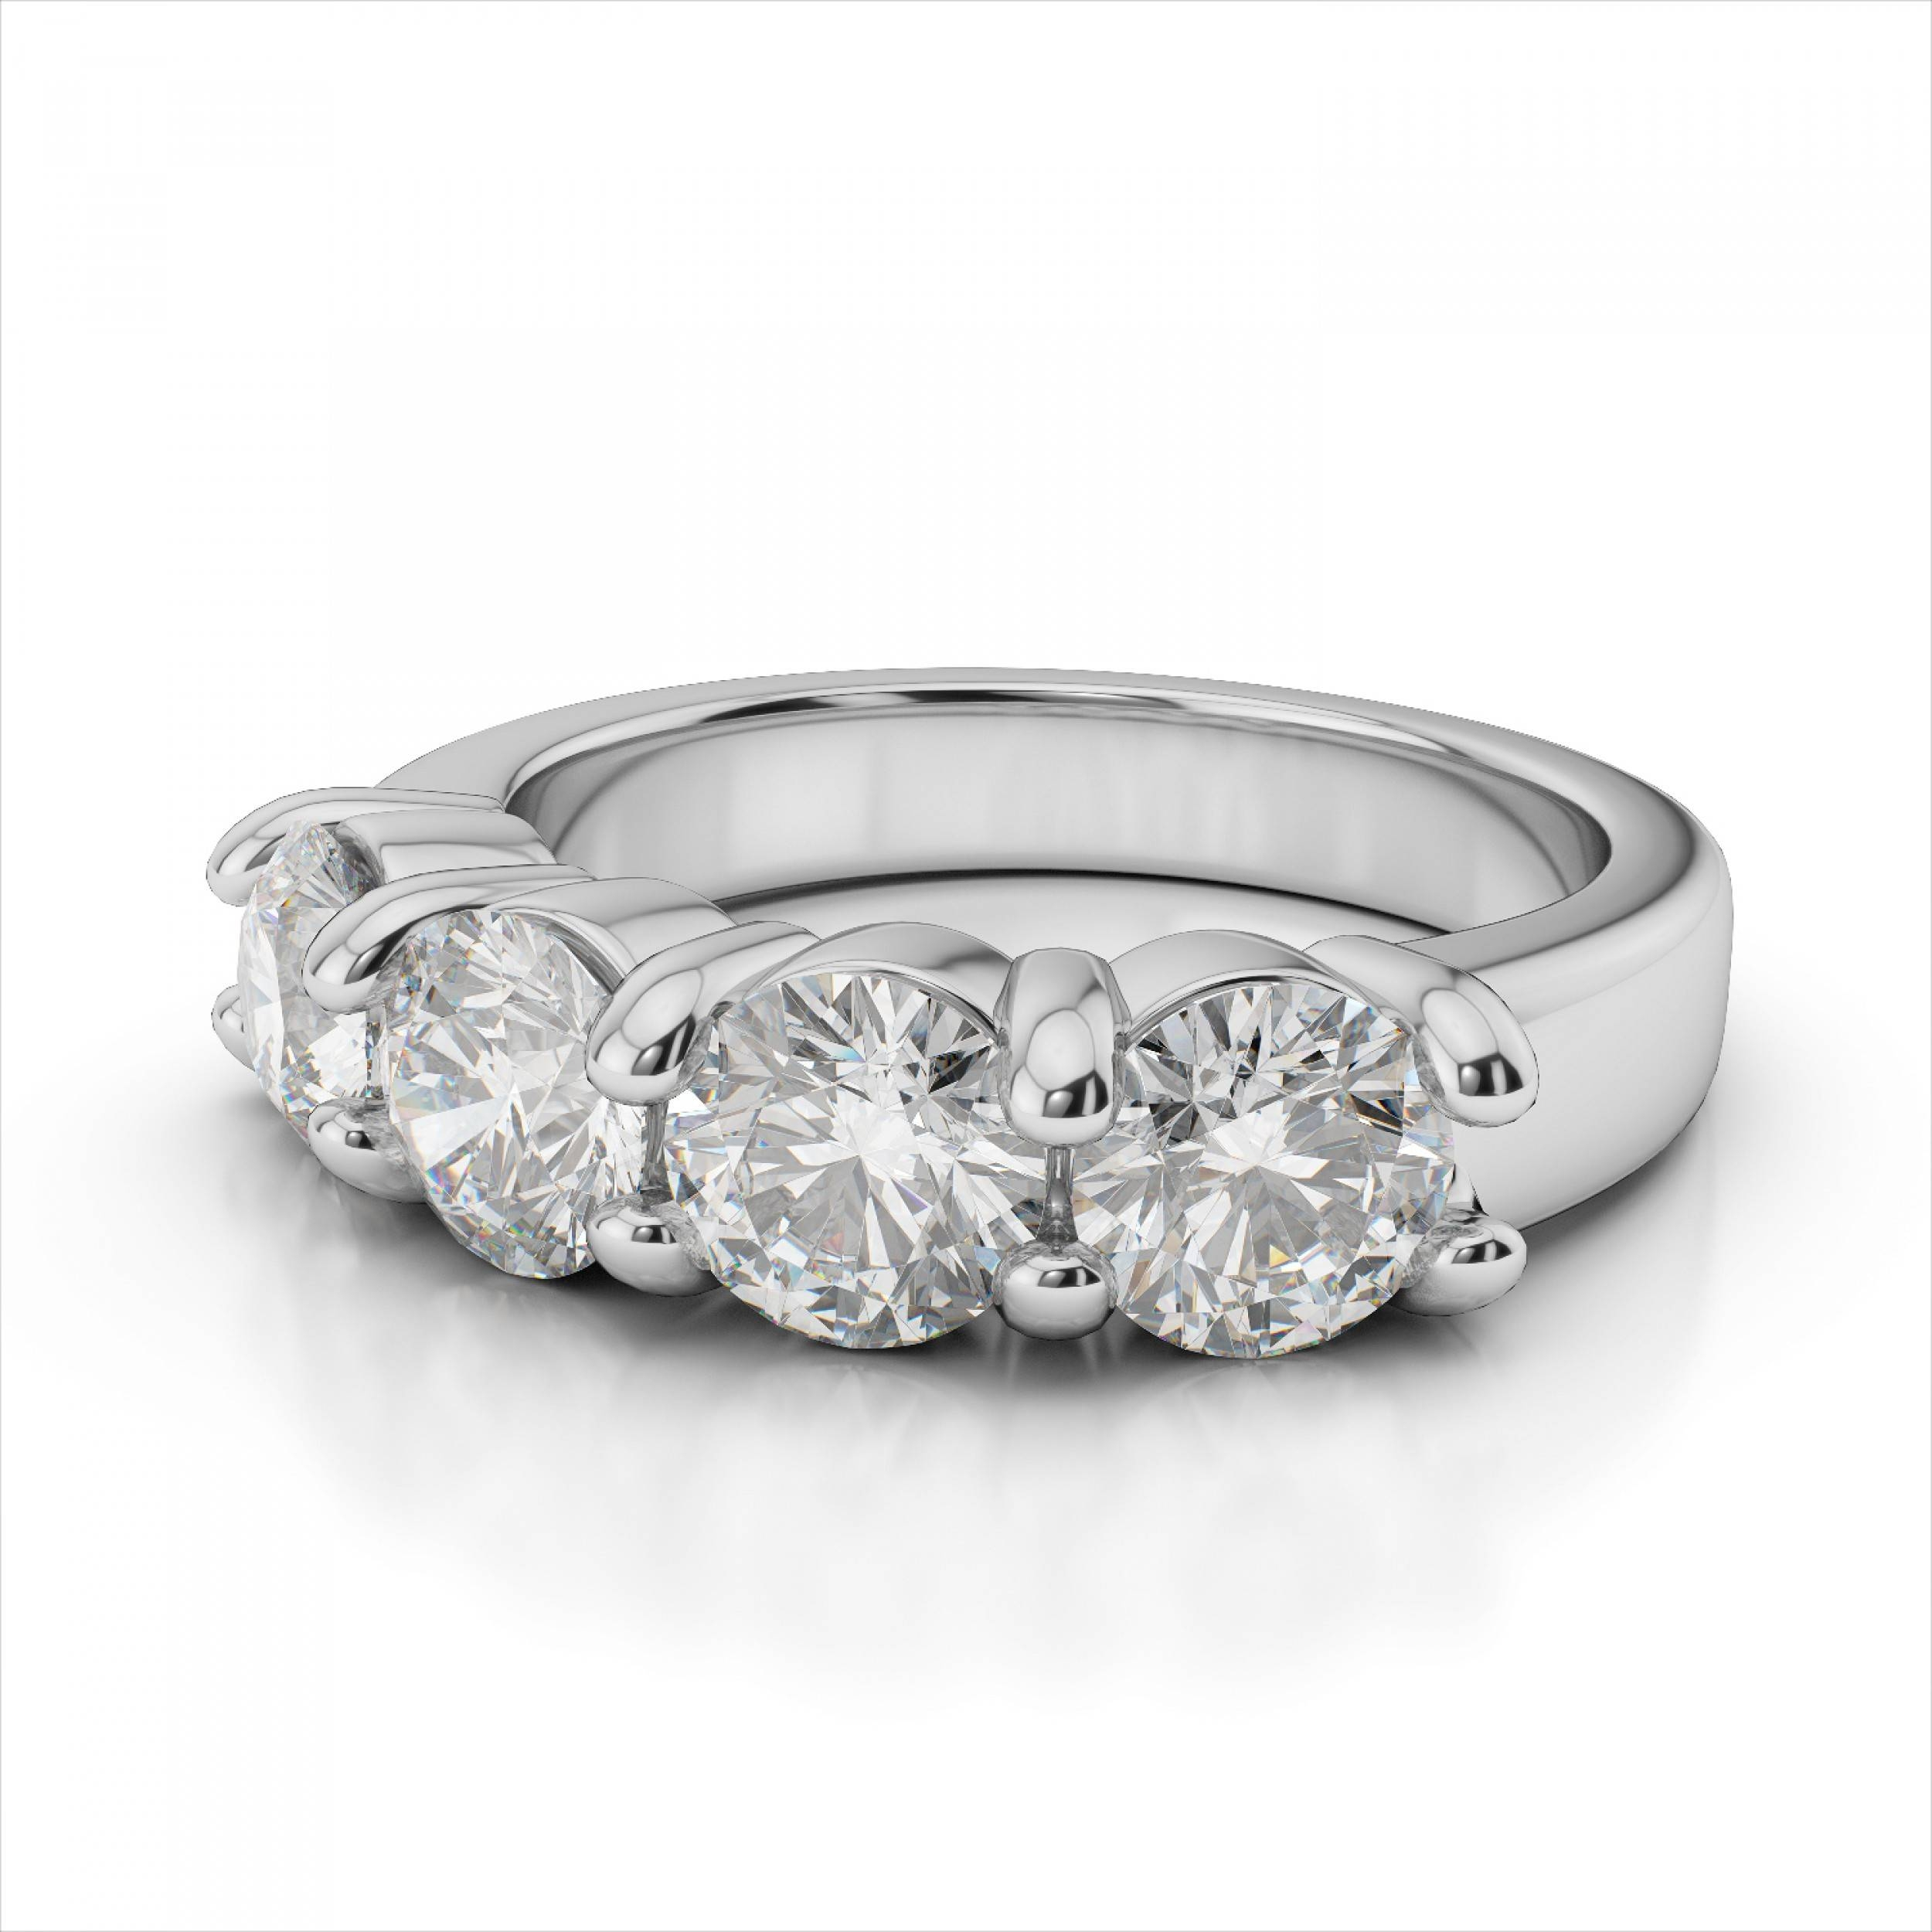 4 Stone Diamond Rings | Wedding, Promise, Diamond, Engagement Within 2018 Diamonds Anniversary Rings (View 2 of 25)